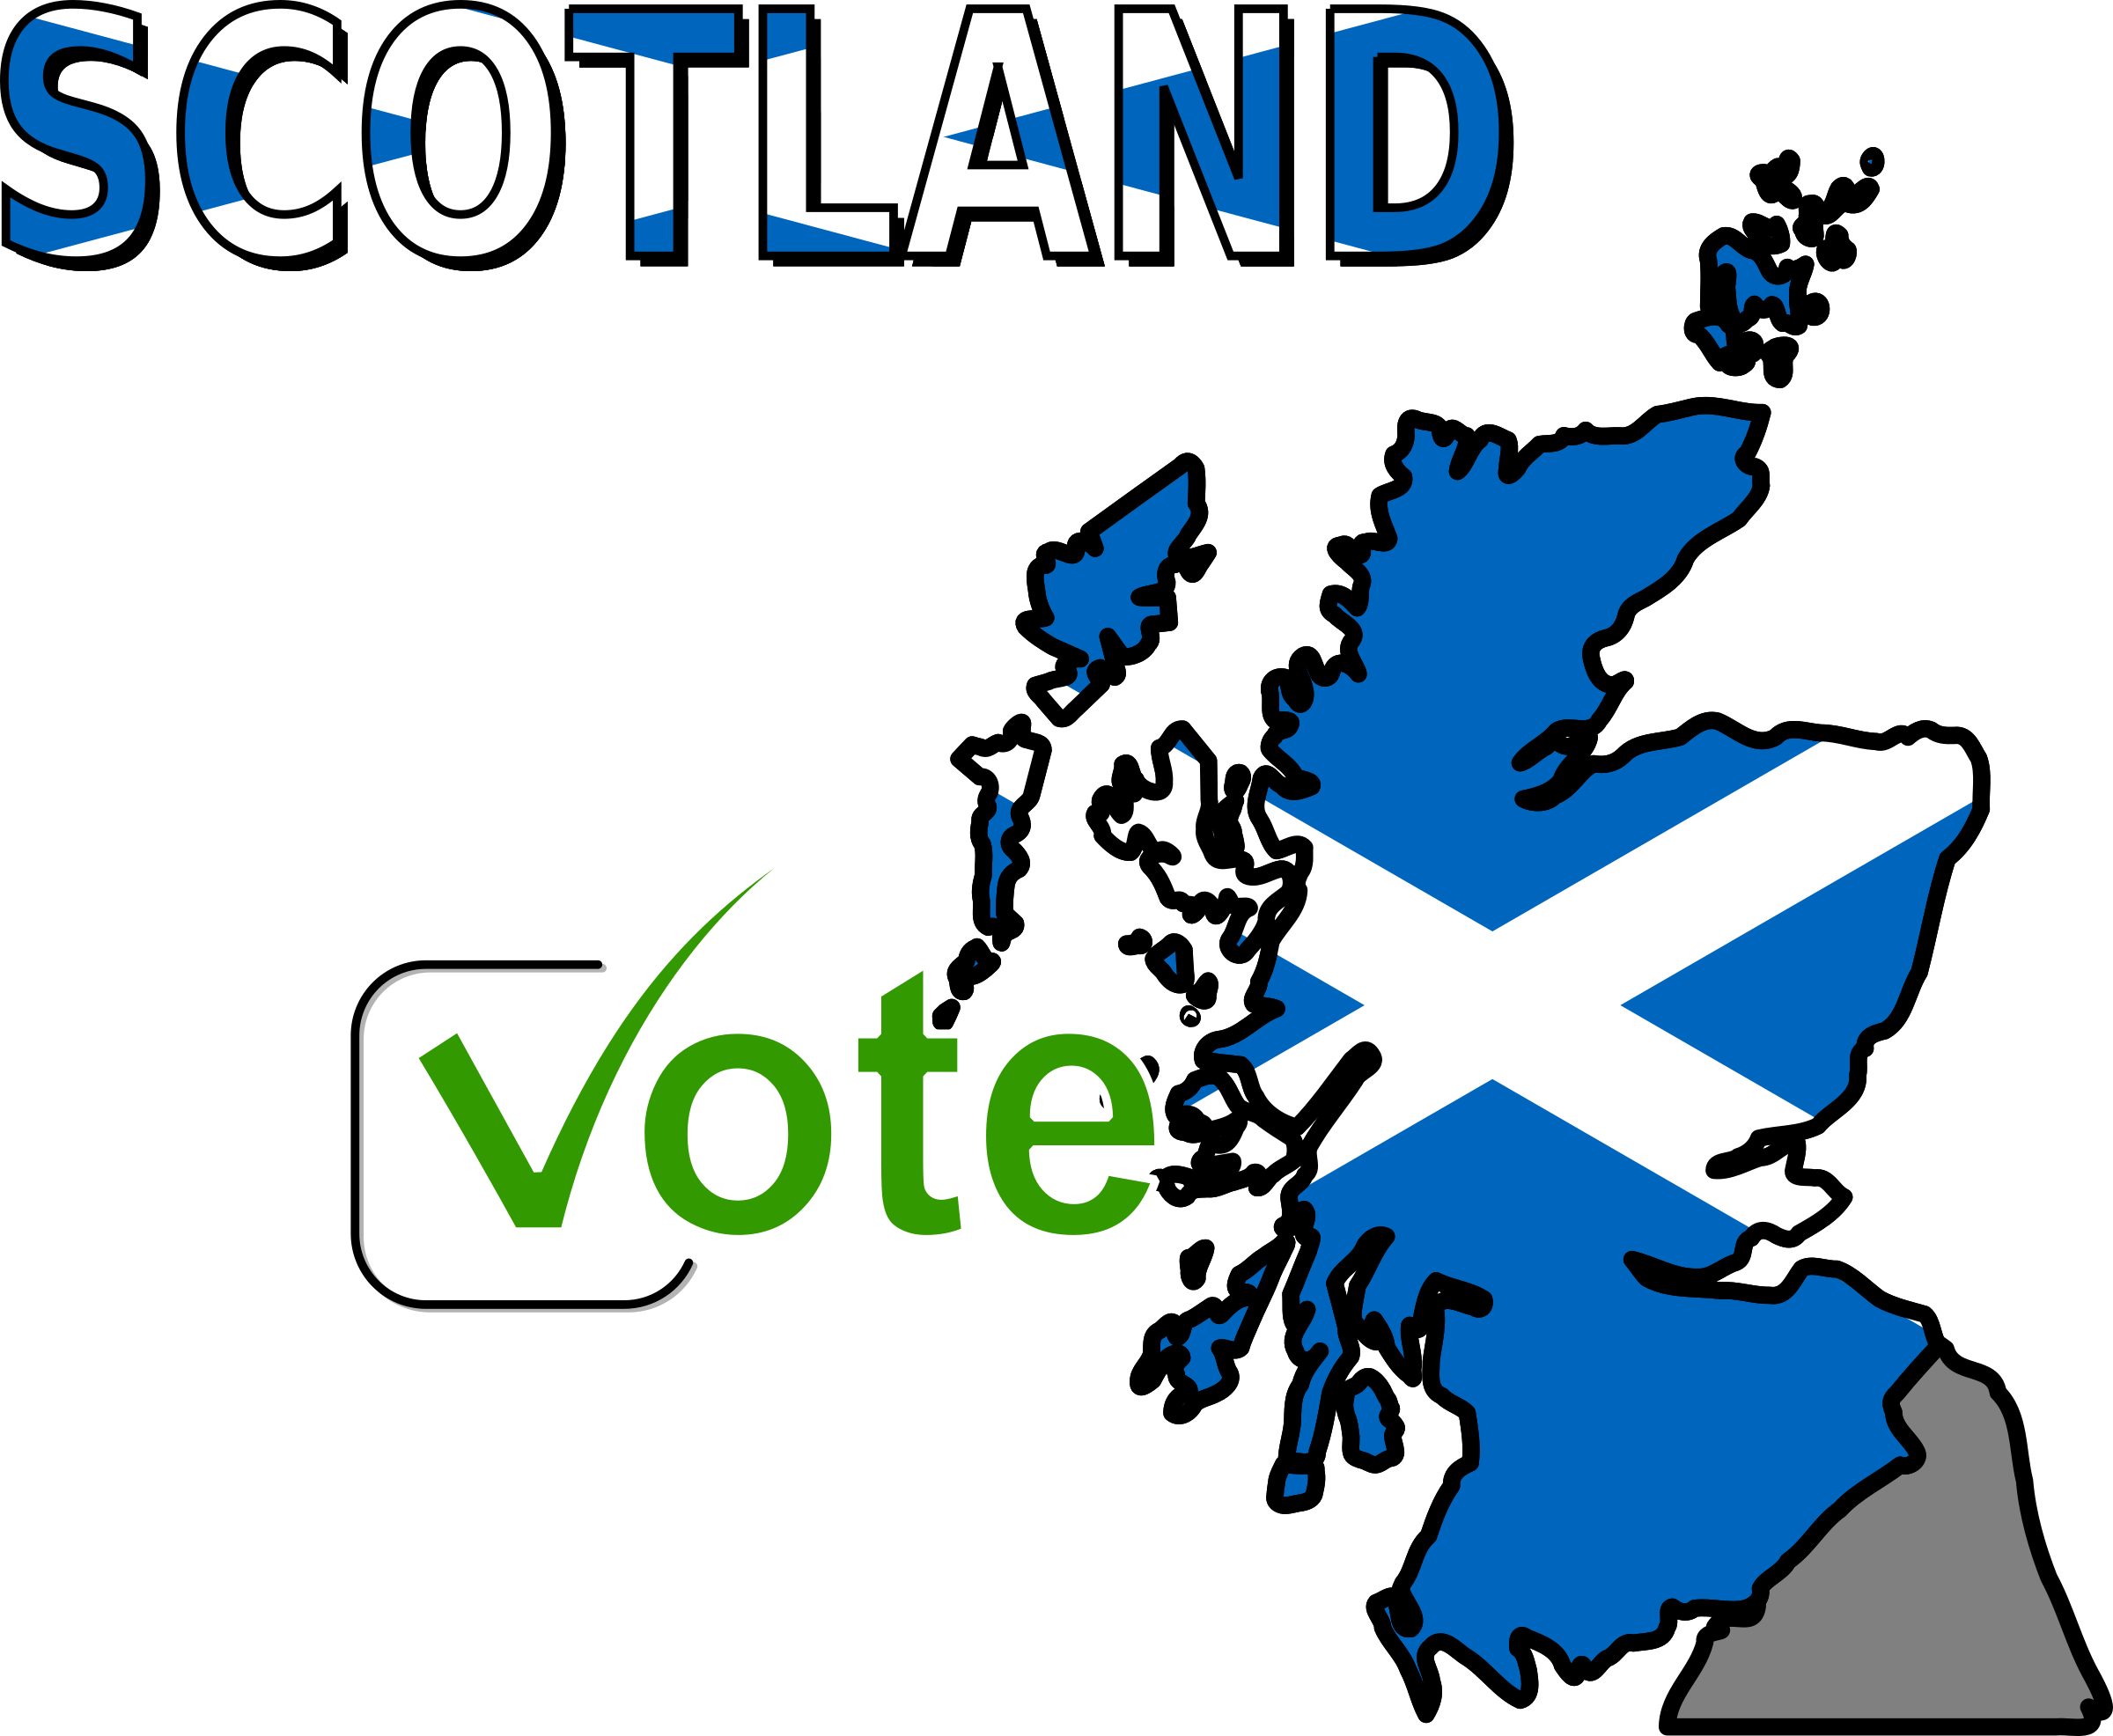 Scotland Vote by cyberscooty